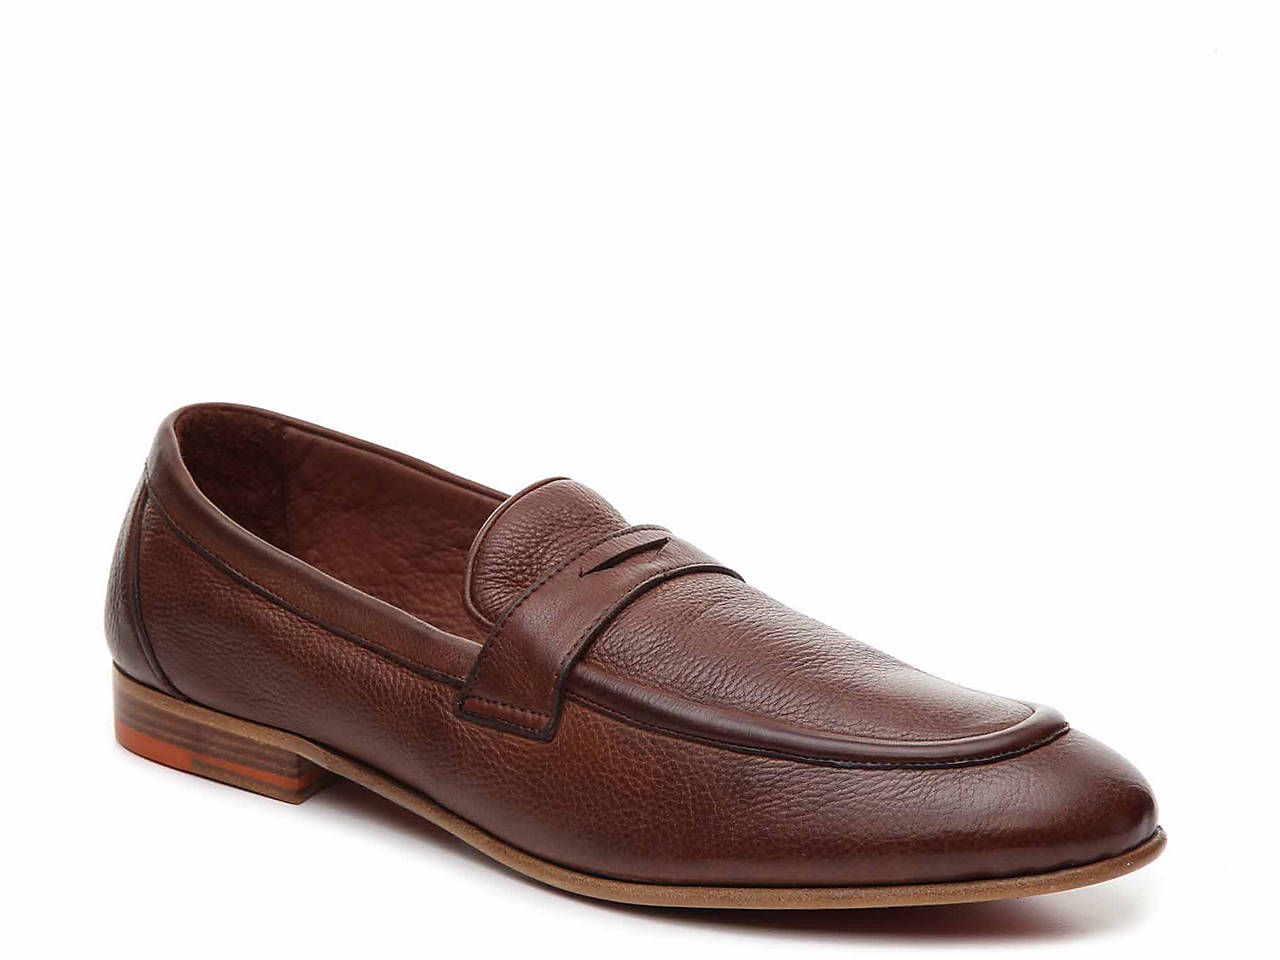 Galilei Penny Loafer by Sturlini